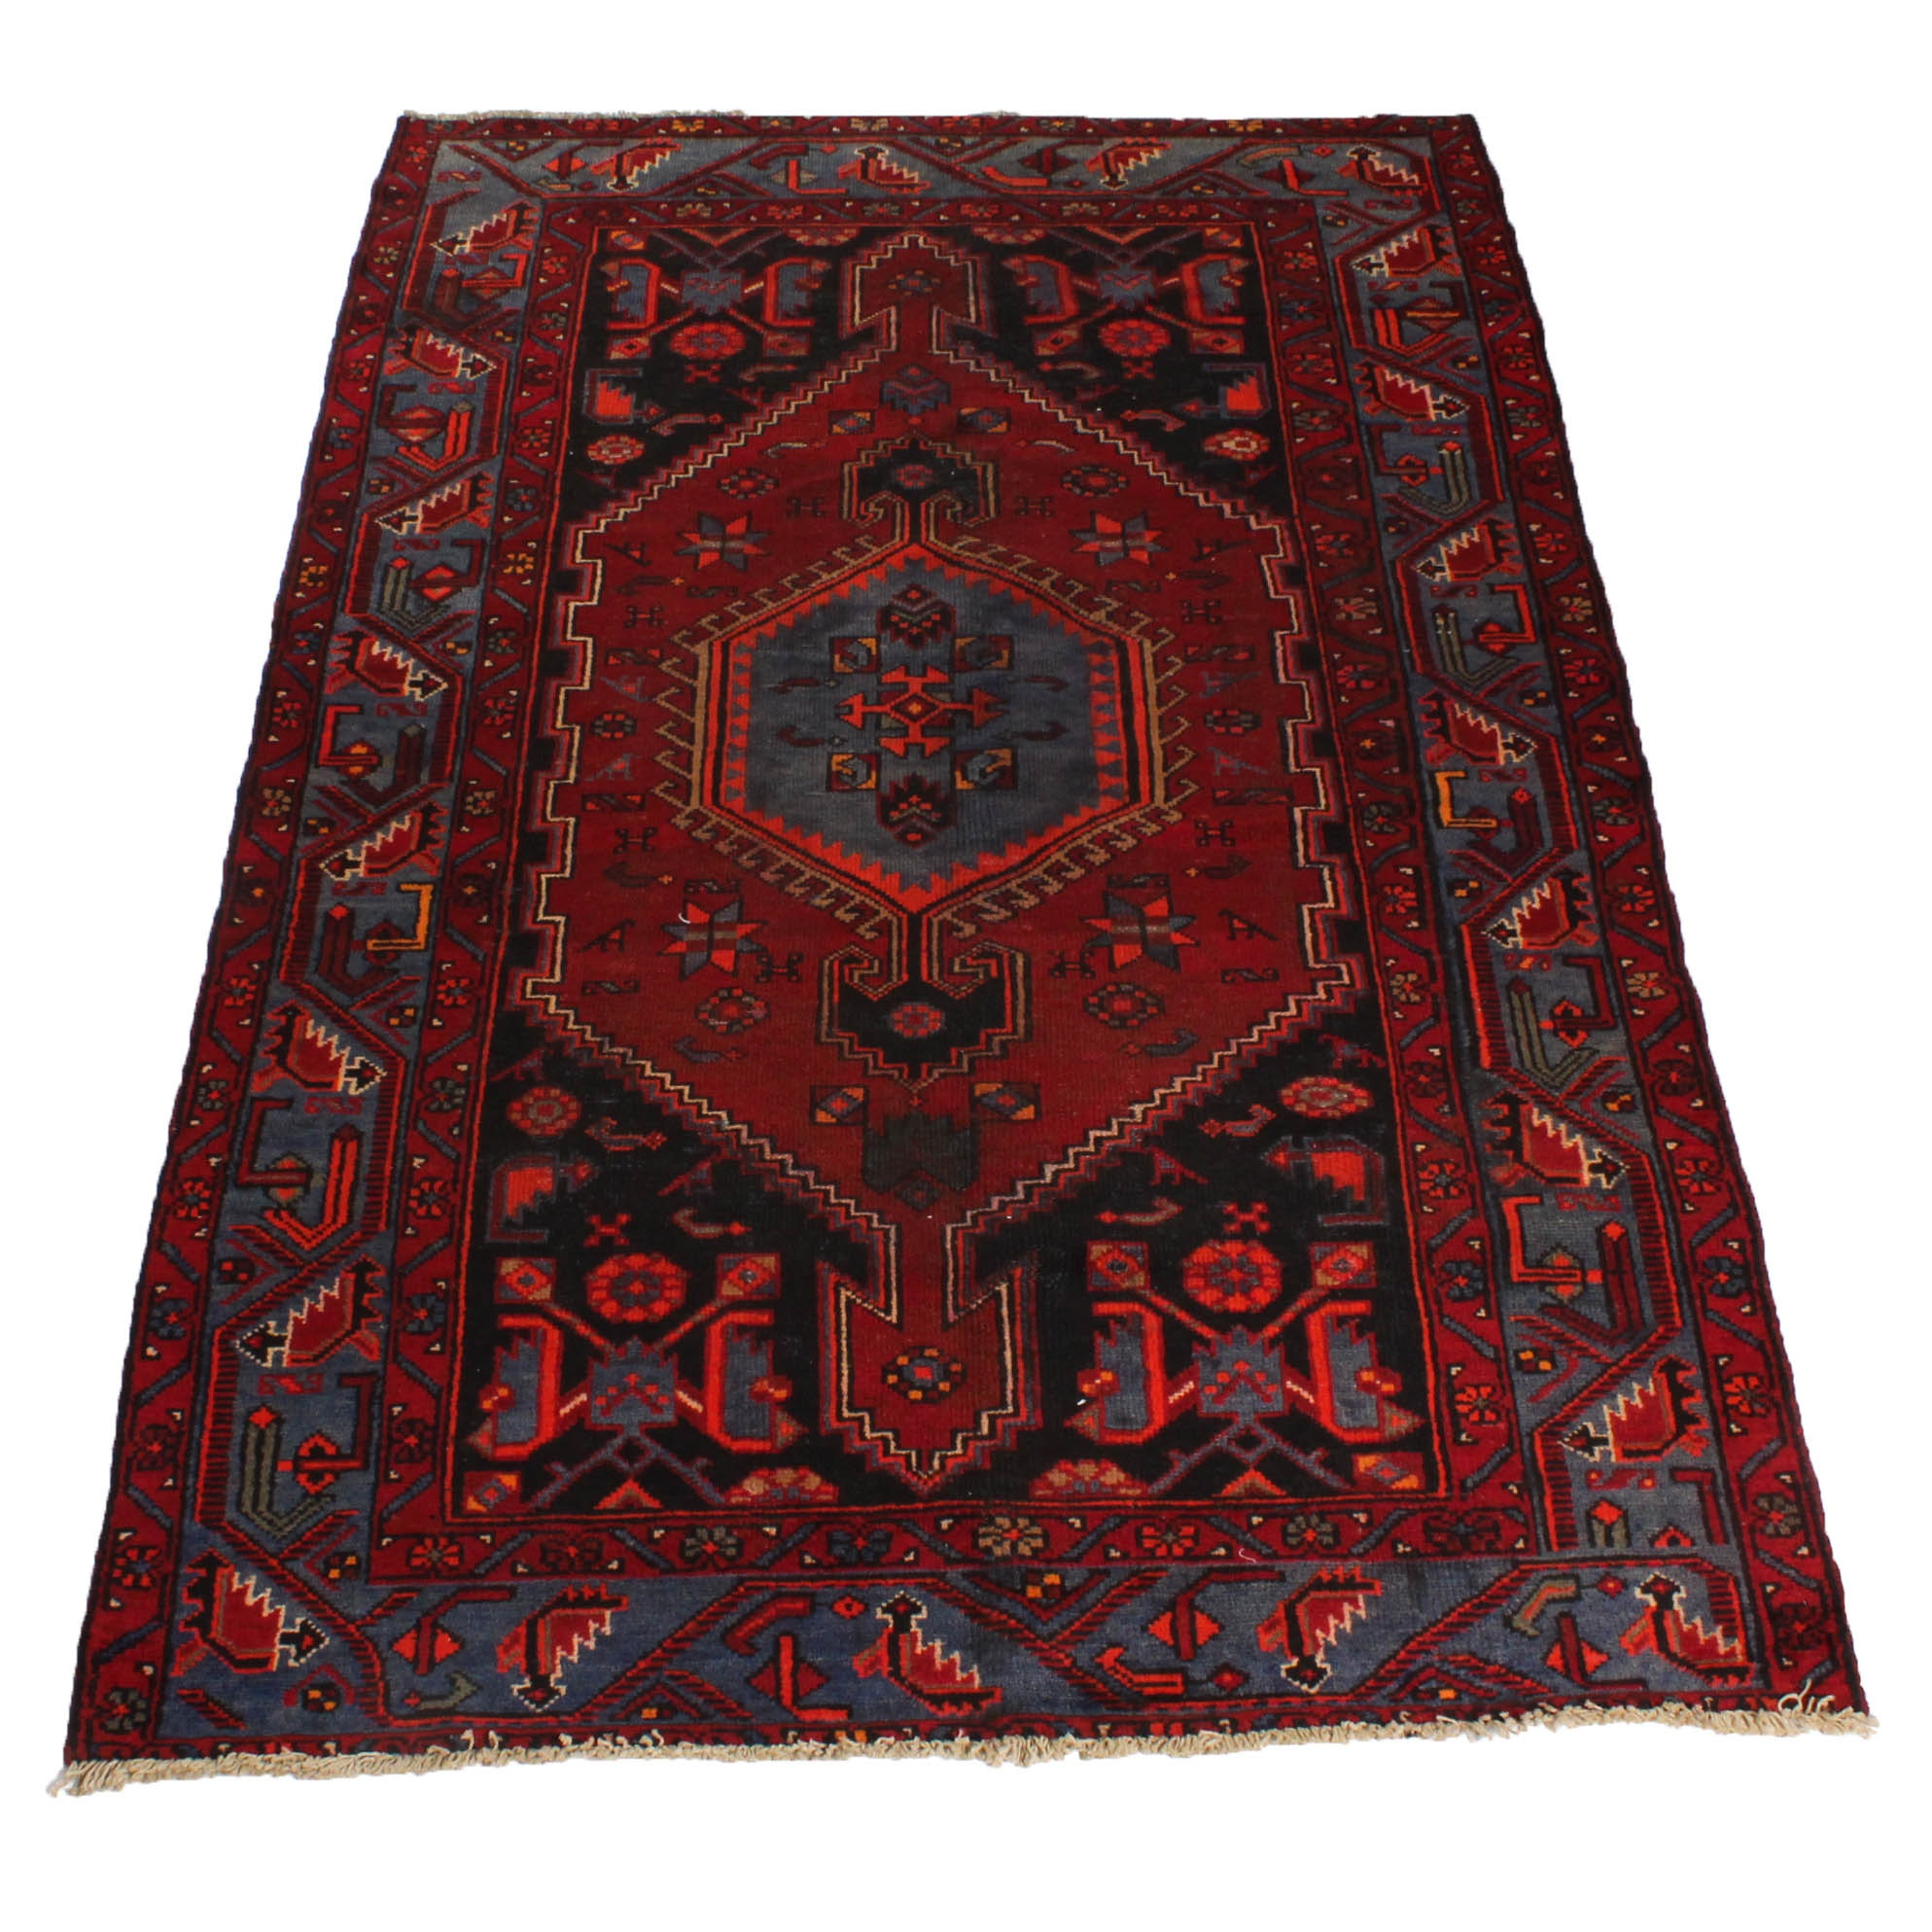 Vintage Hand-Knotted Persian Bowenat Area Rug